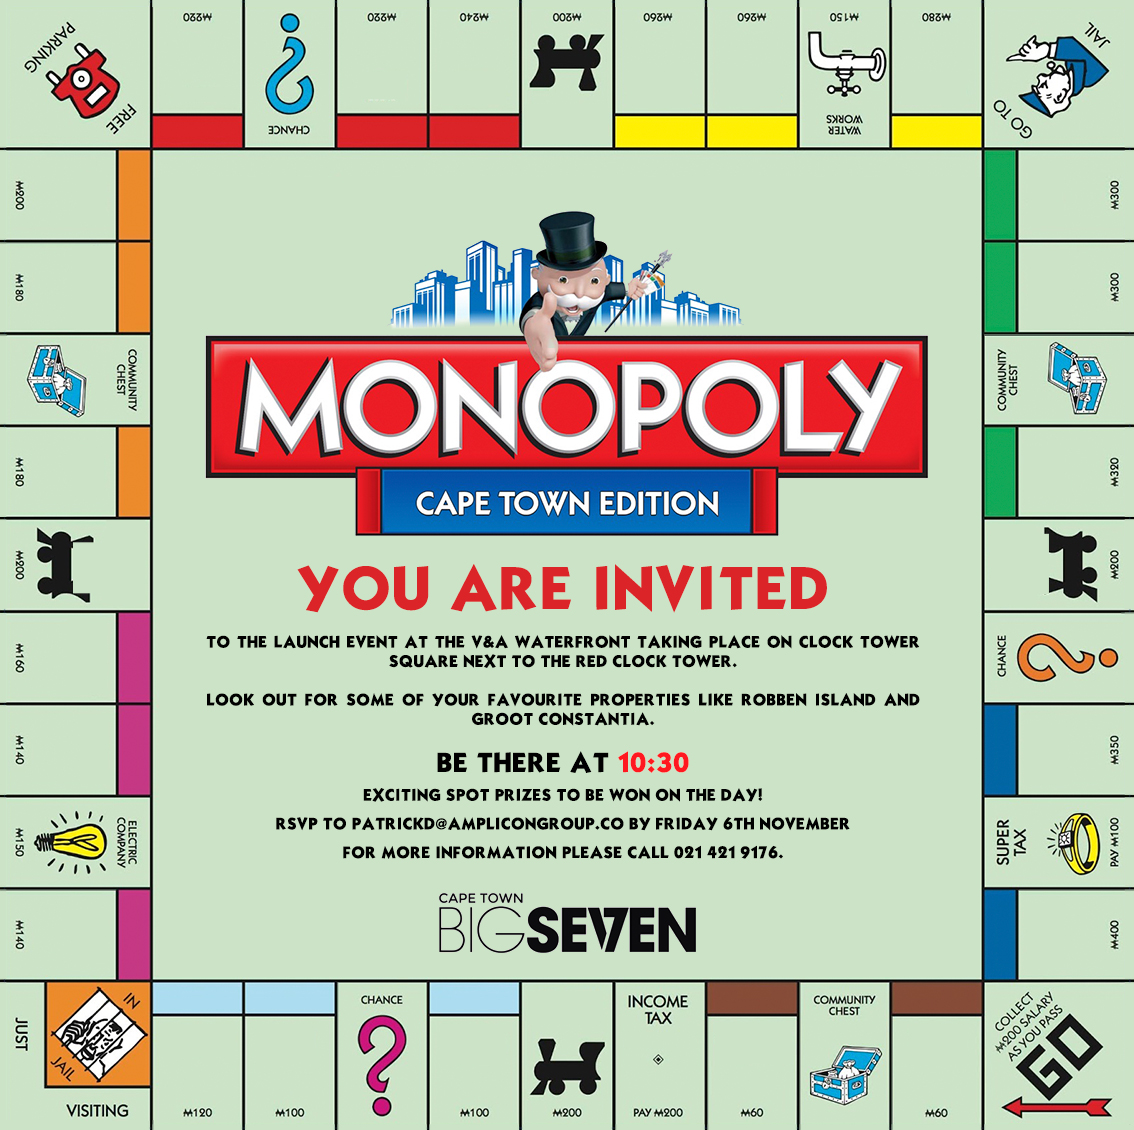 MONOPOLY CAPE TOWN BOARD LAUNCH - MONOPOLY Cape Town (news)